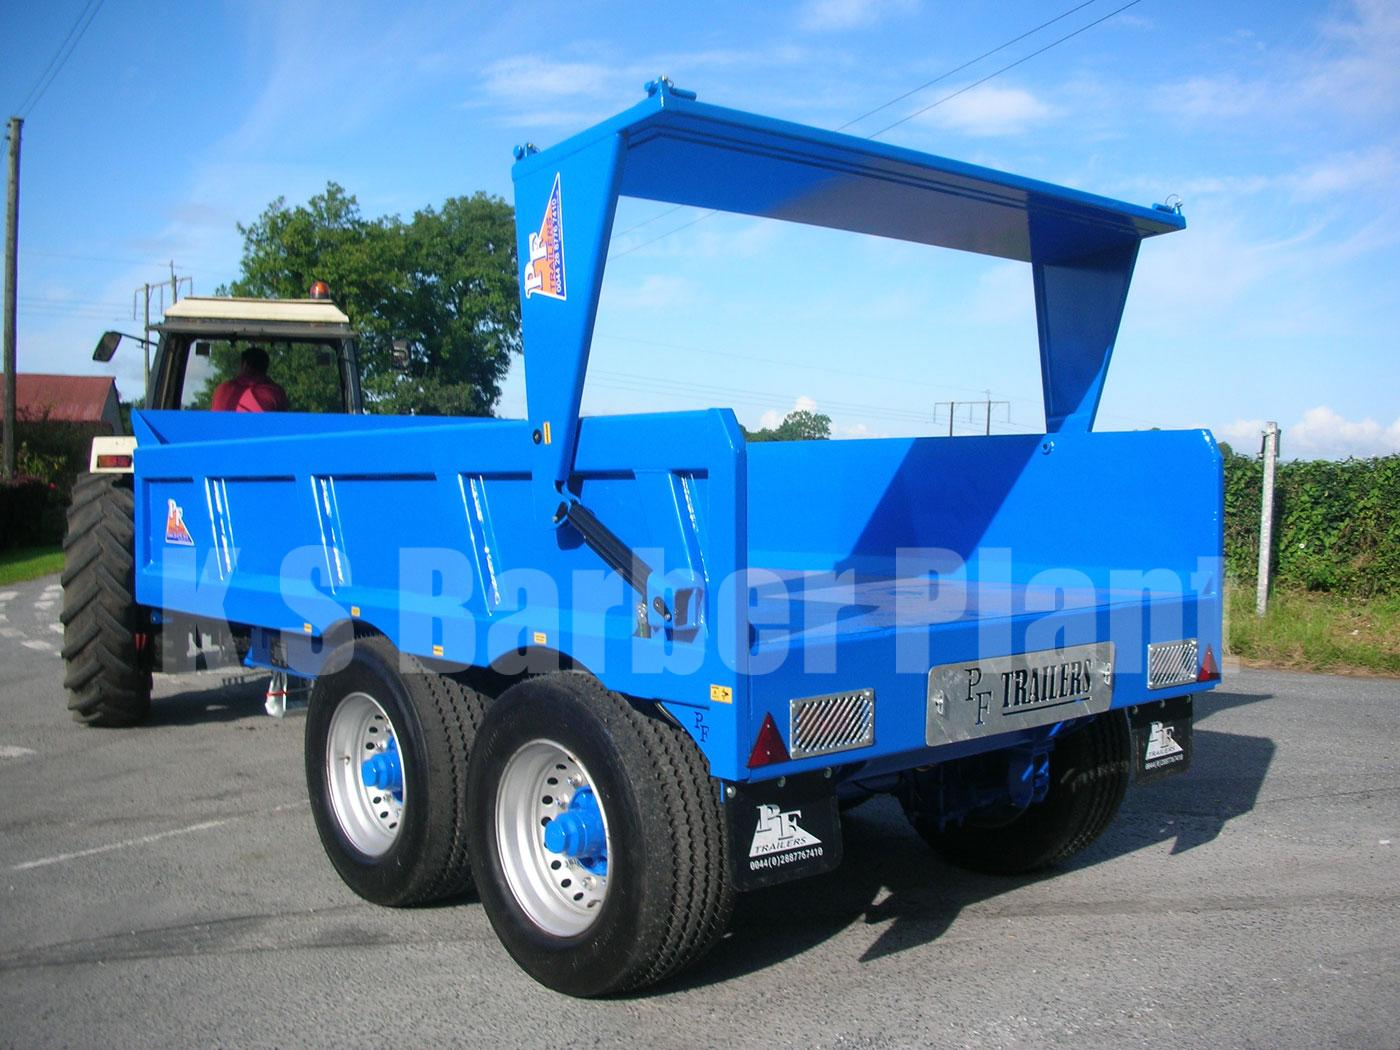 12T, 14T & 16T Multi Purpose Trailers